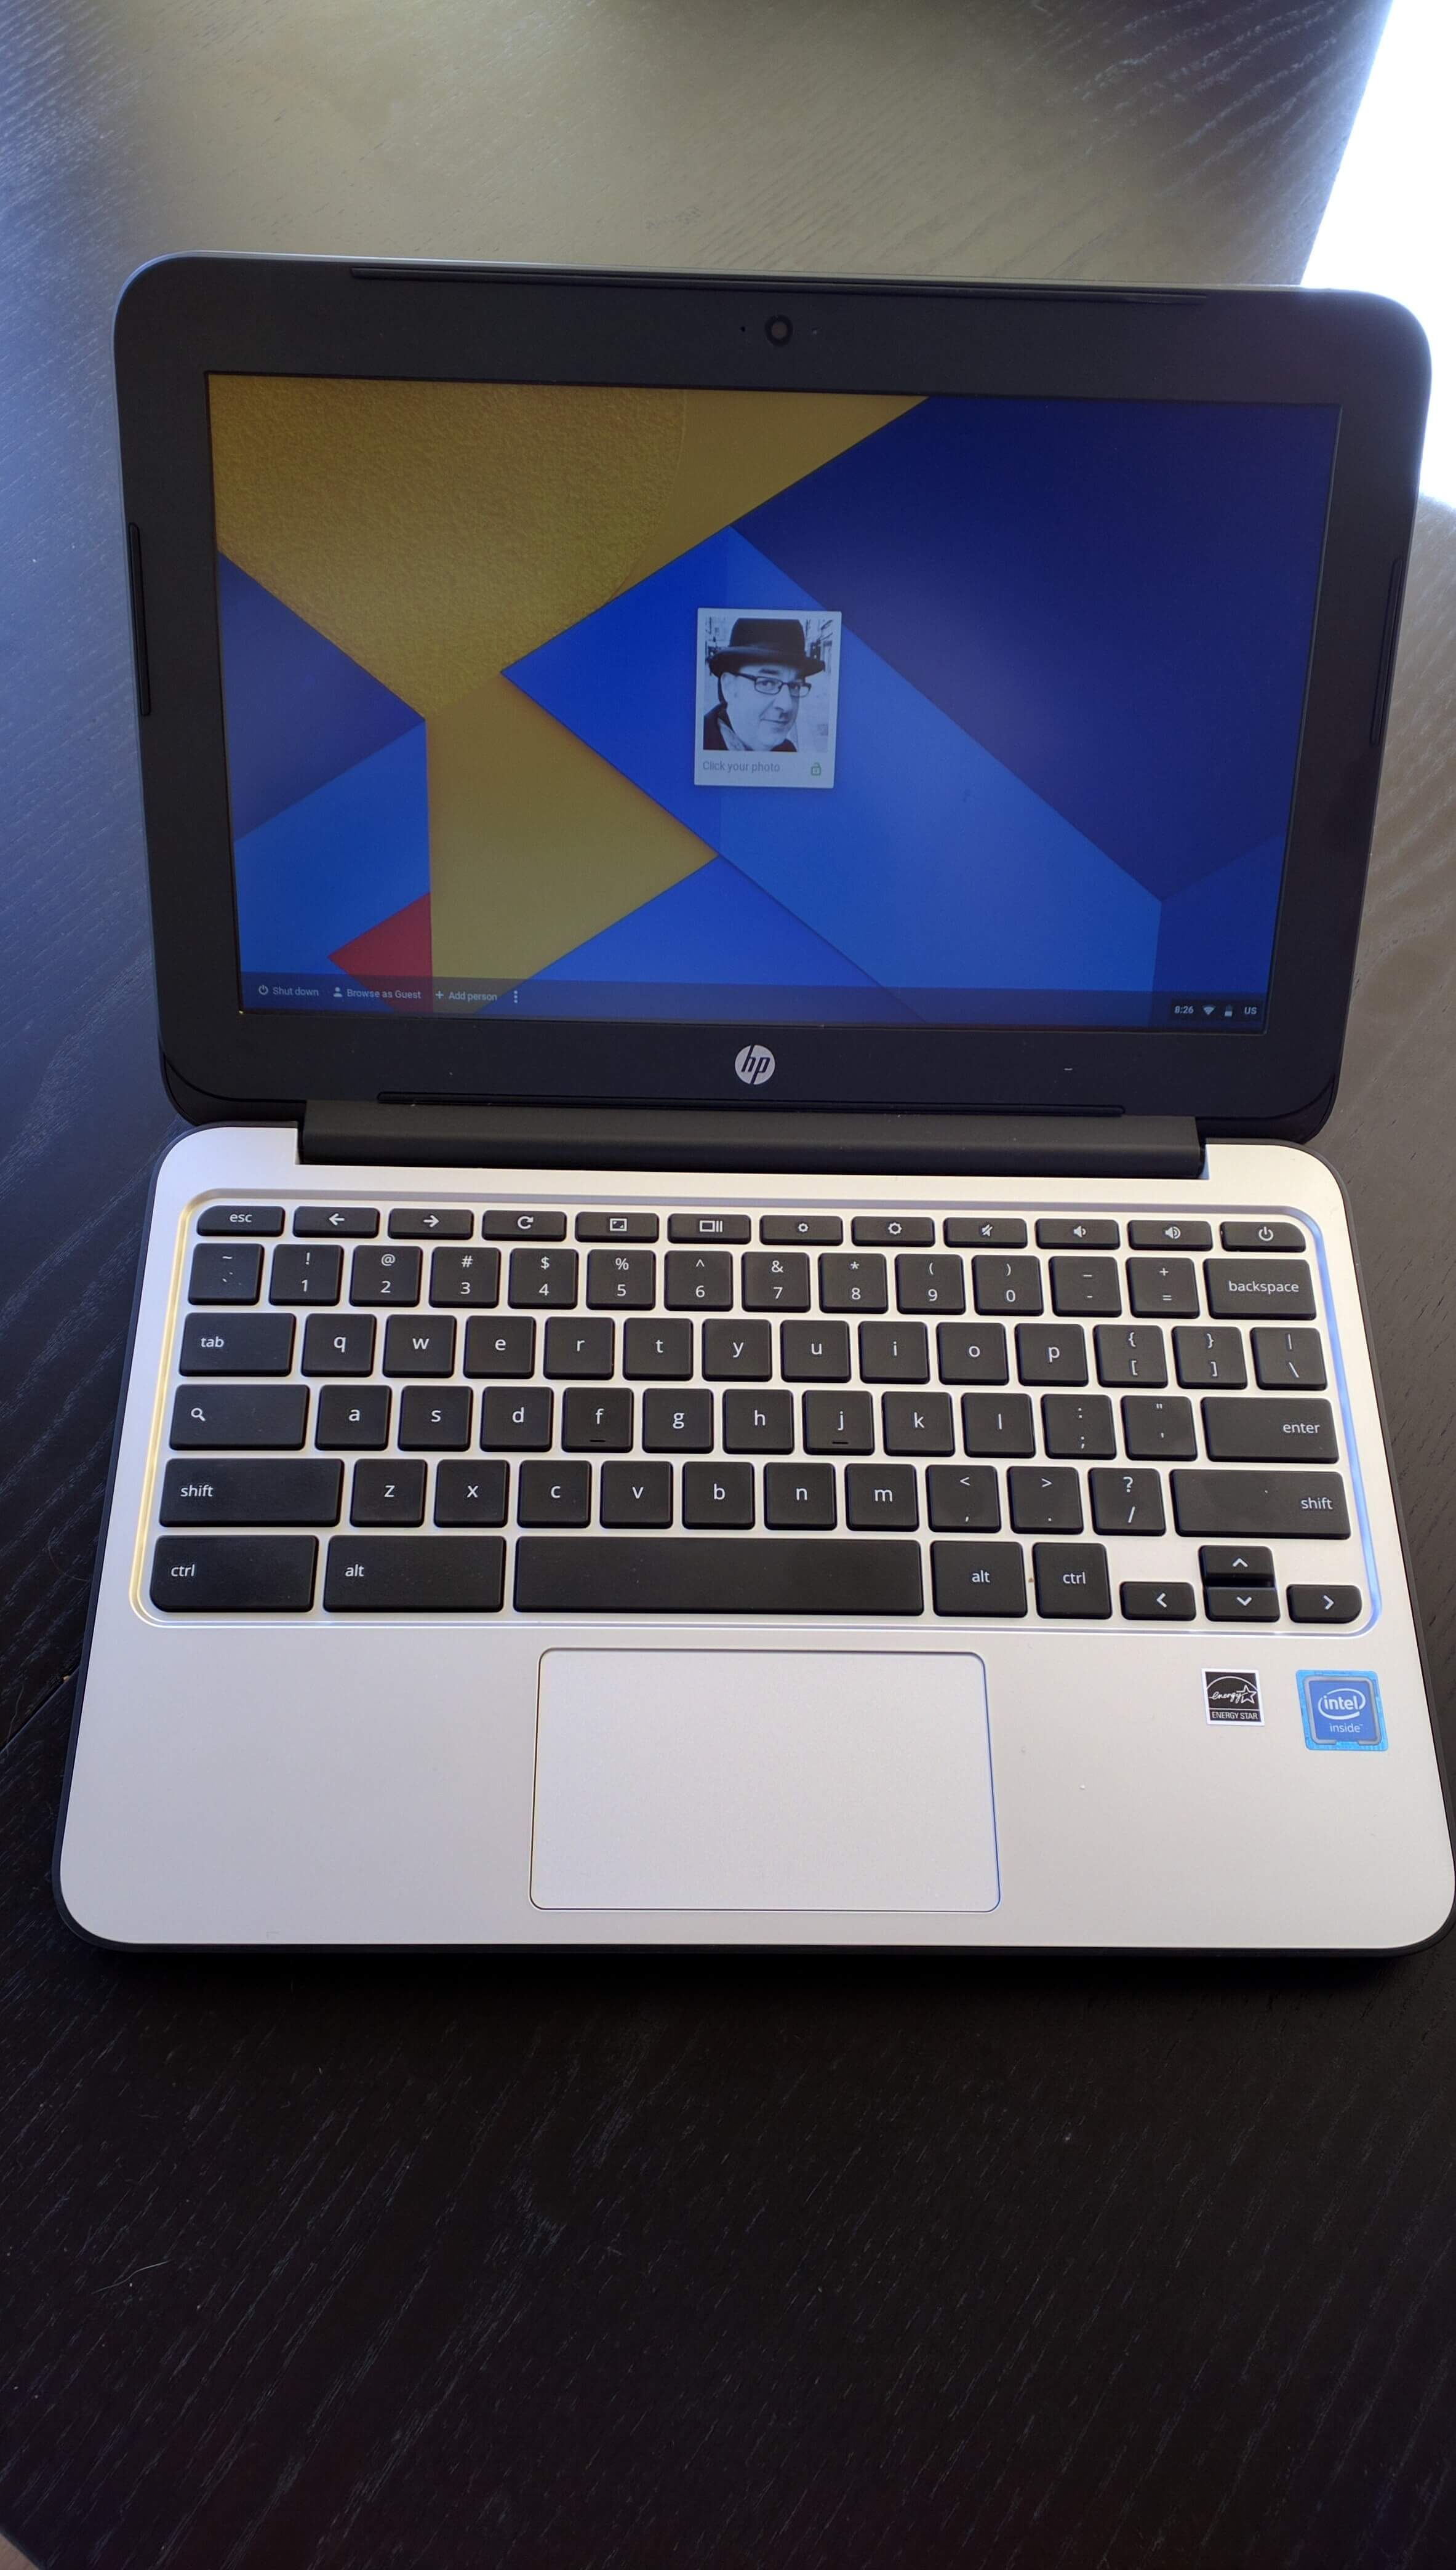 Review of HP Chromebook 11 G4 - Solid Build & Performance